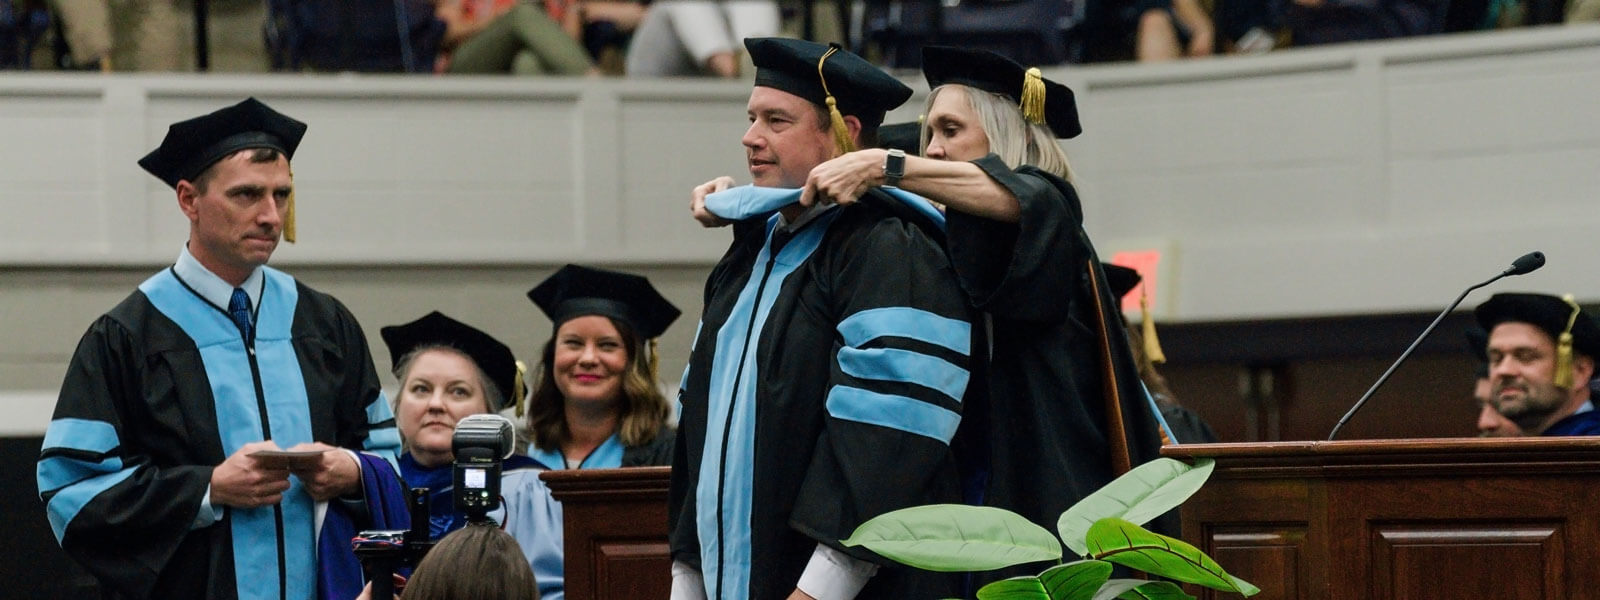 doctor of education graduate shakes president's hand as he receives diploma on graduation stage